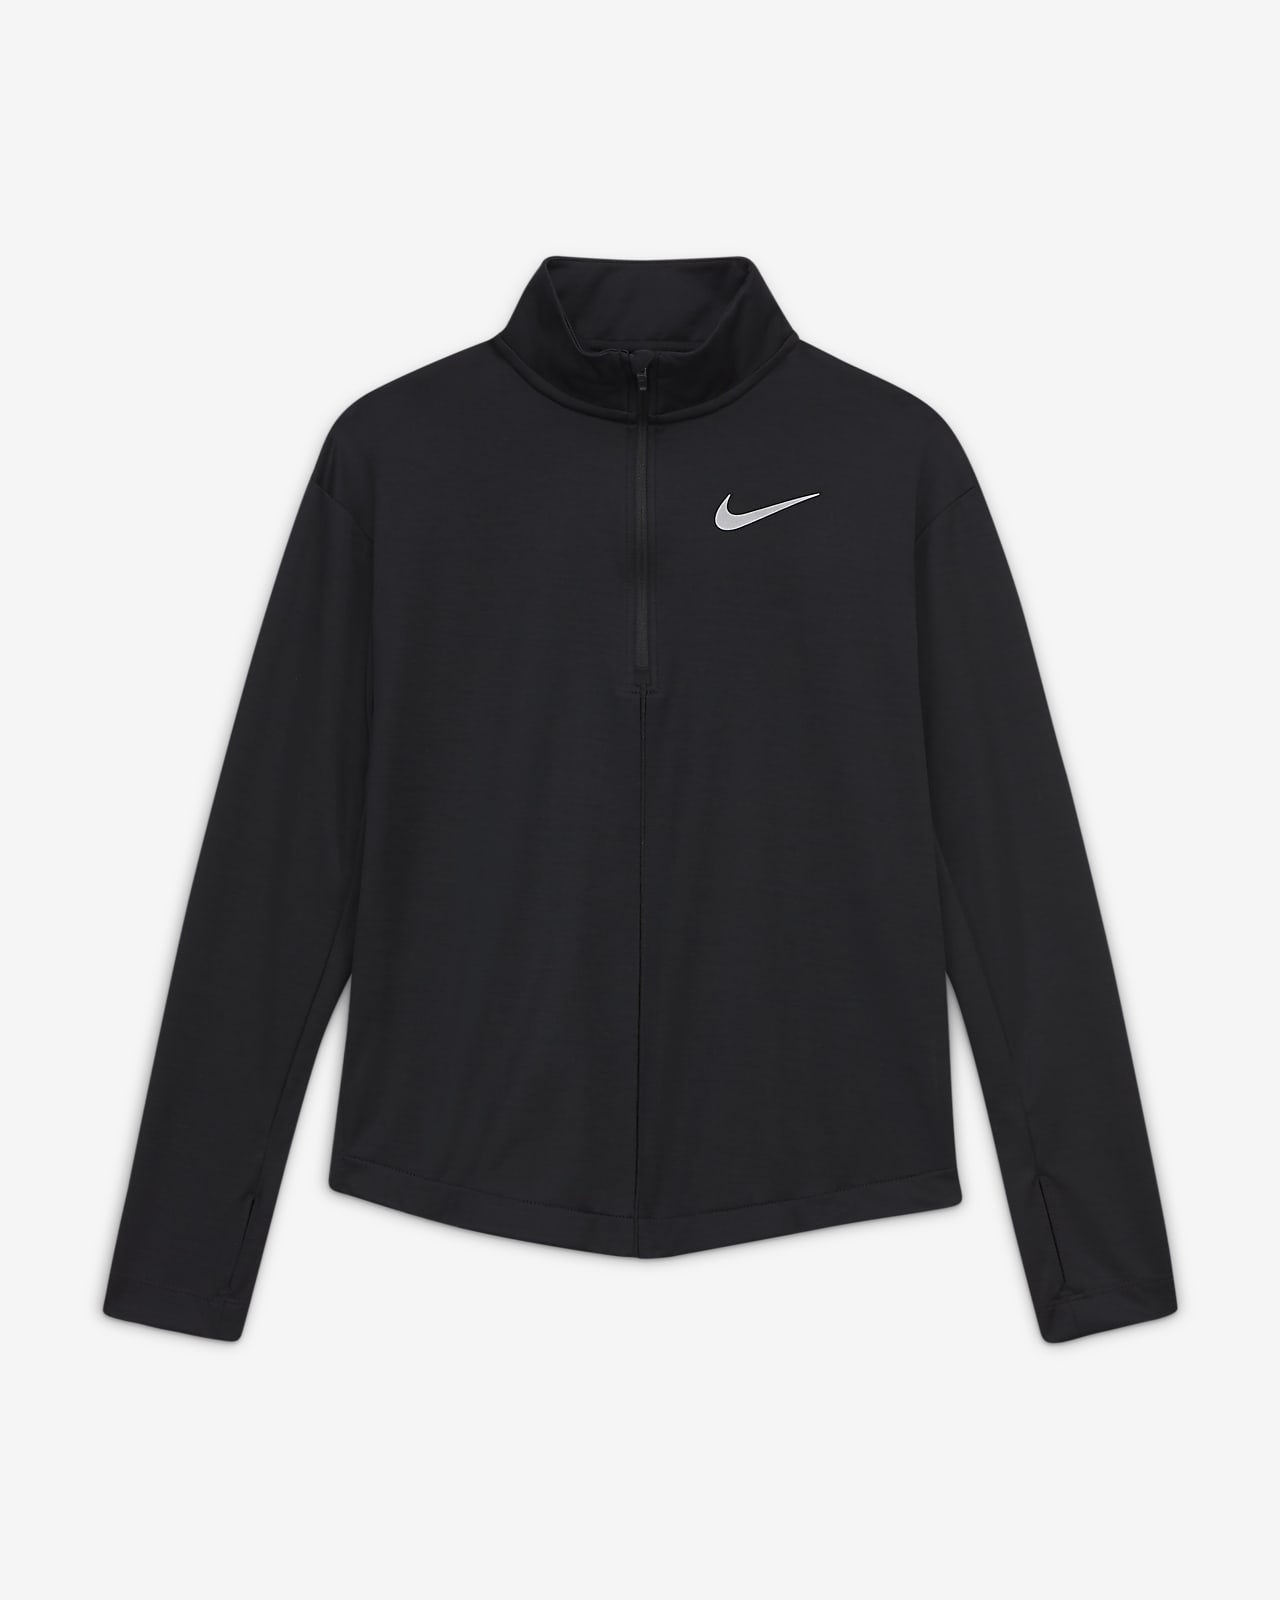 Nike Big Kids' (Girls') 1/2-Zip Long-Sleeve Running Top